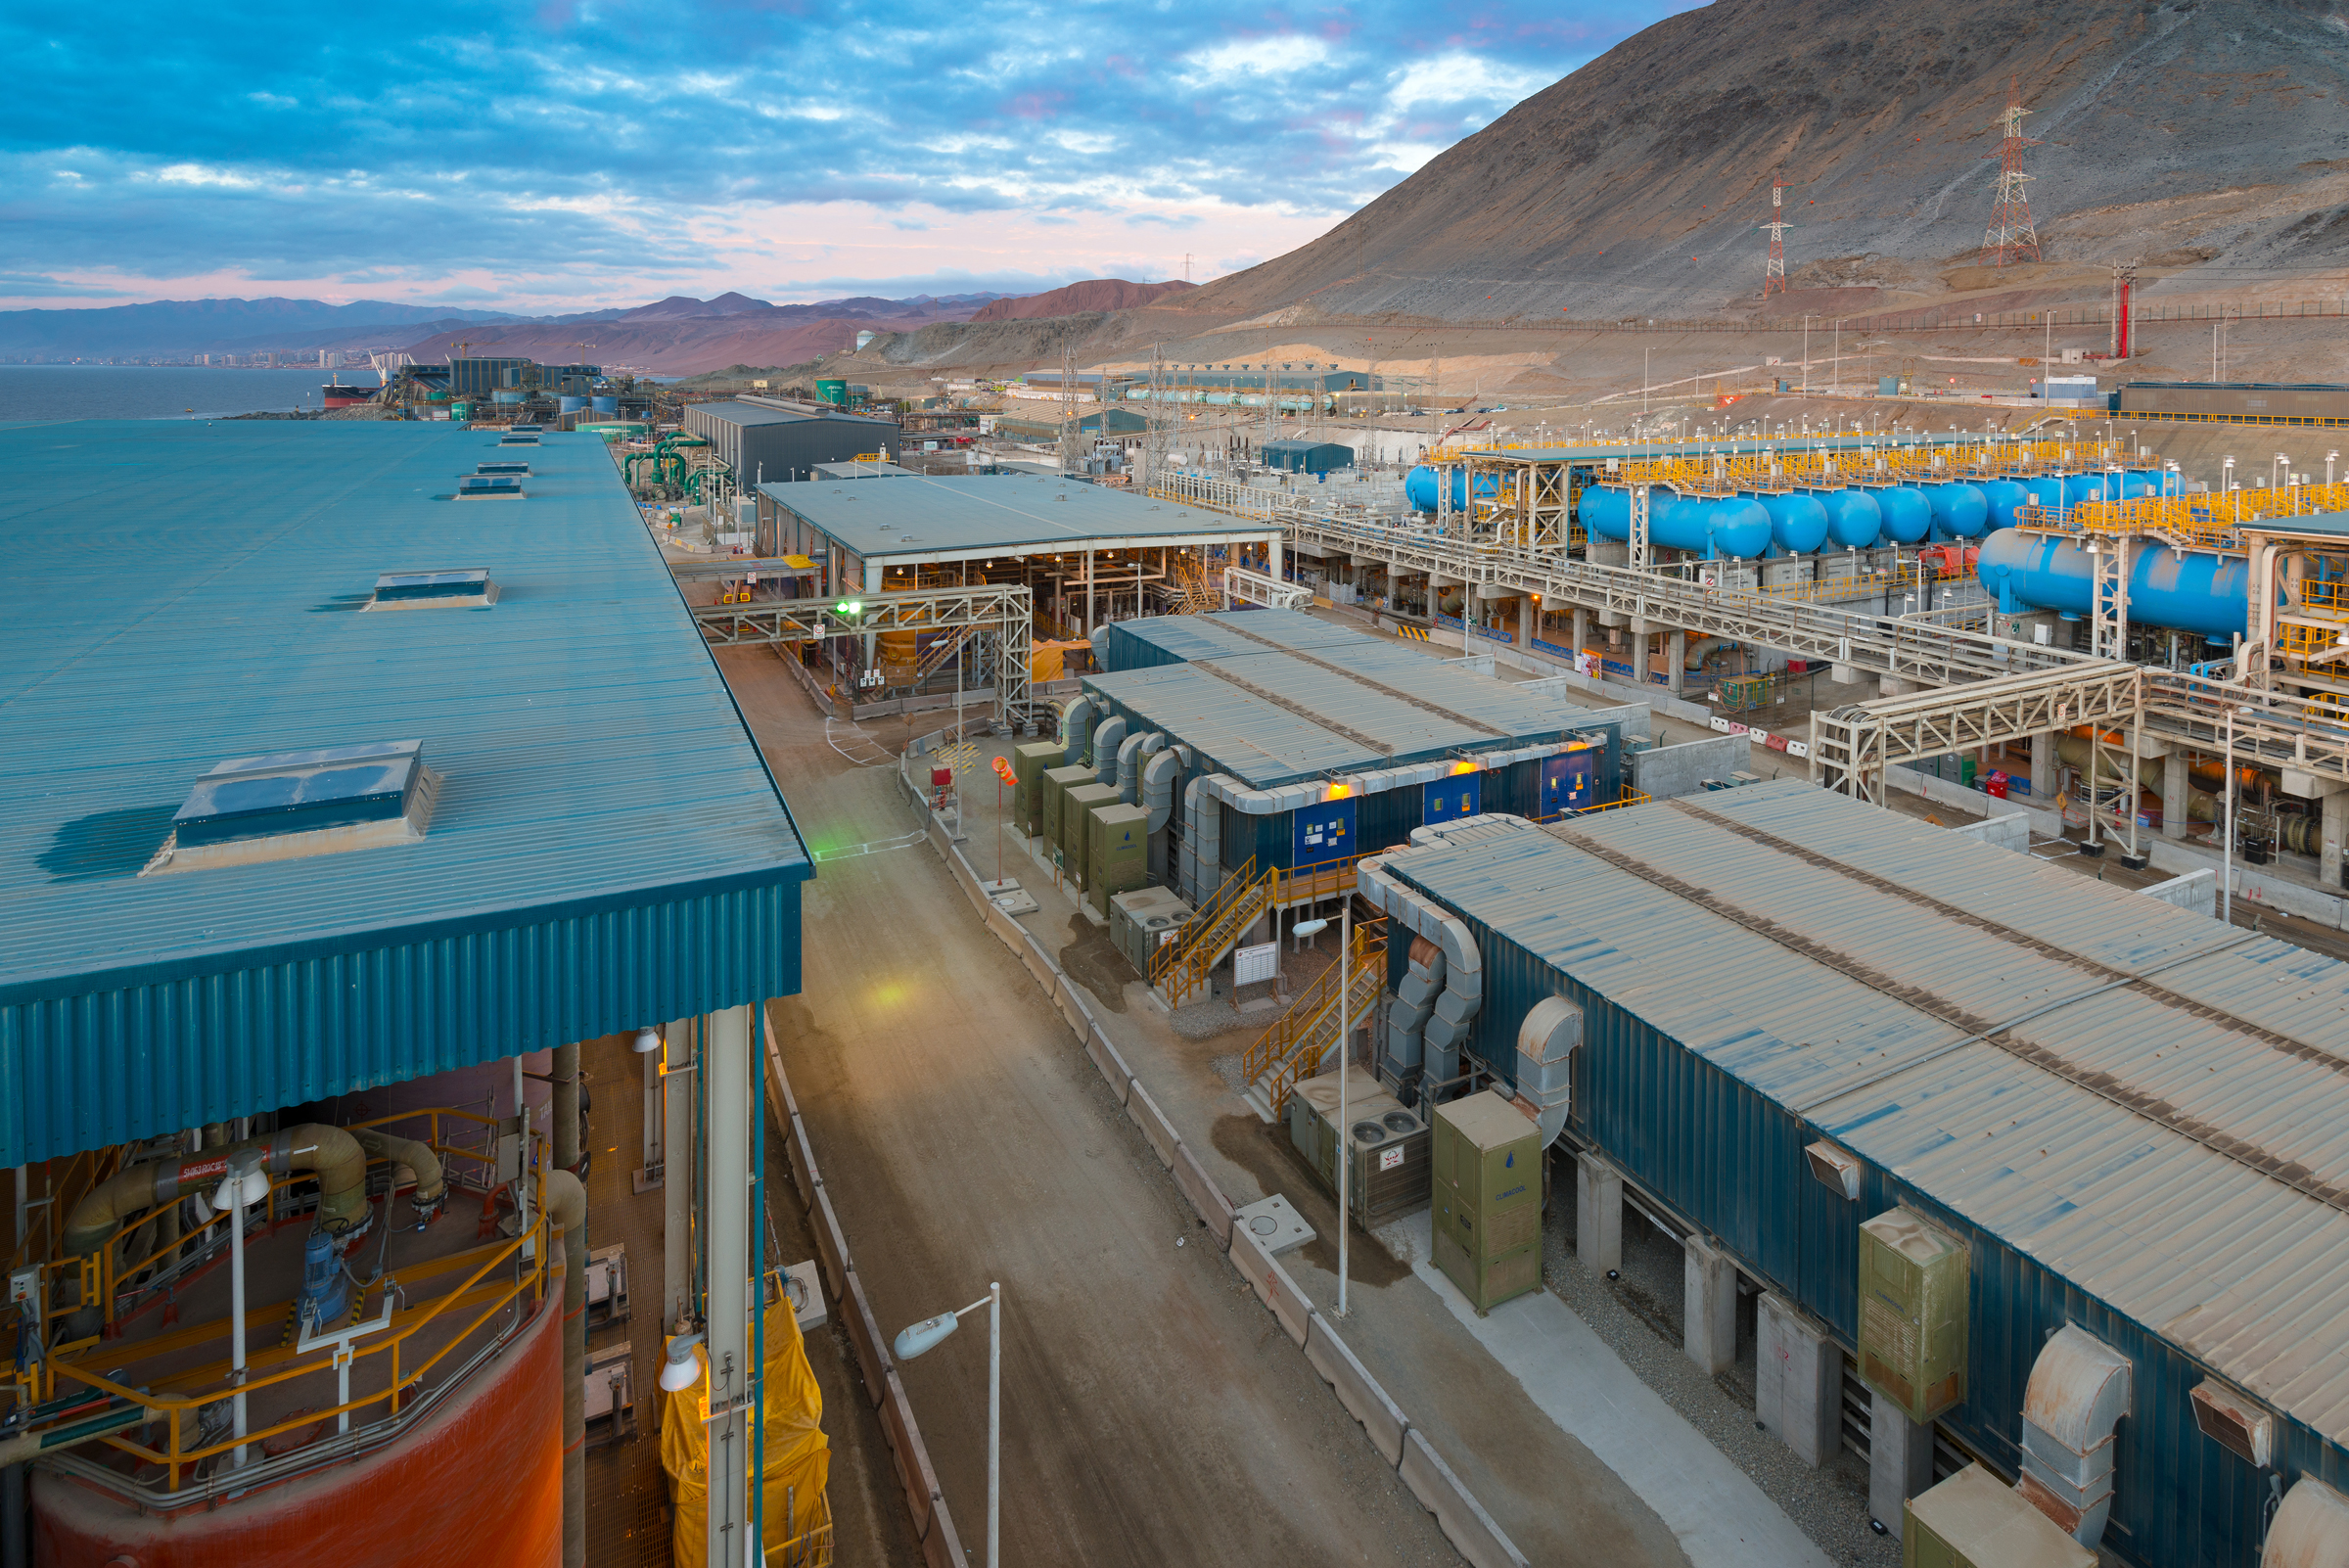 Water Supply Project Earns Global Desalination Plant Honor